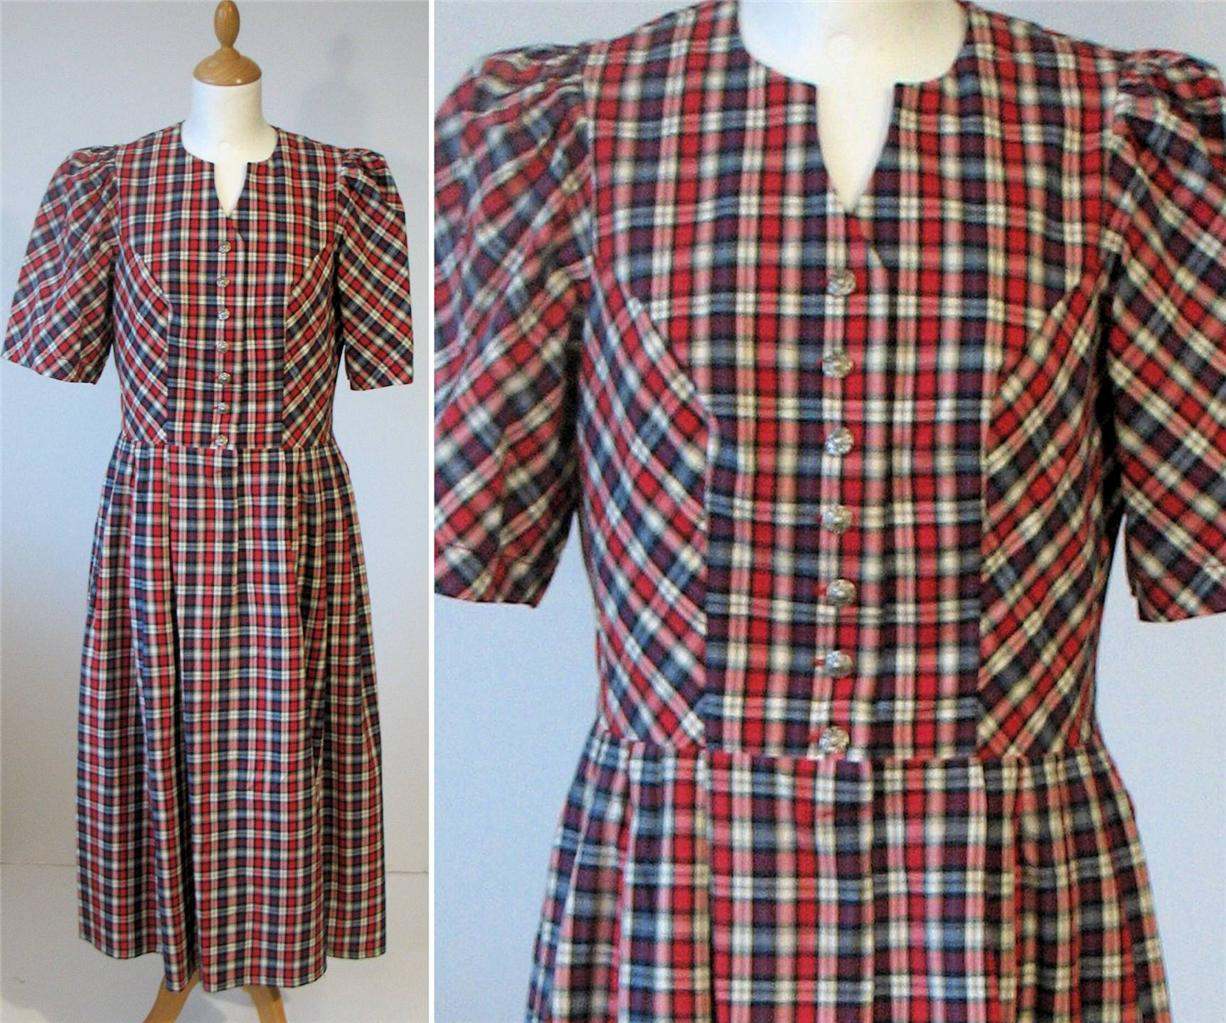 Vintage-Retro-German-Bavarian-Folk-Ethnic-Dress-Dirndl-Check-Red-Long-UK-12